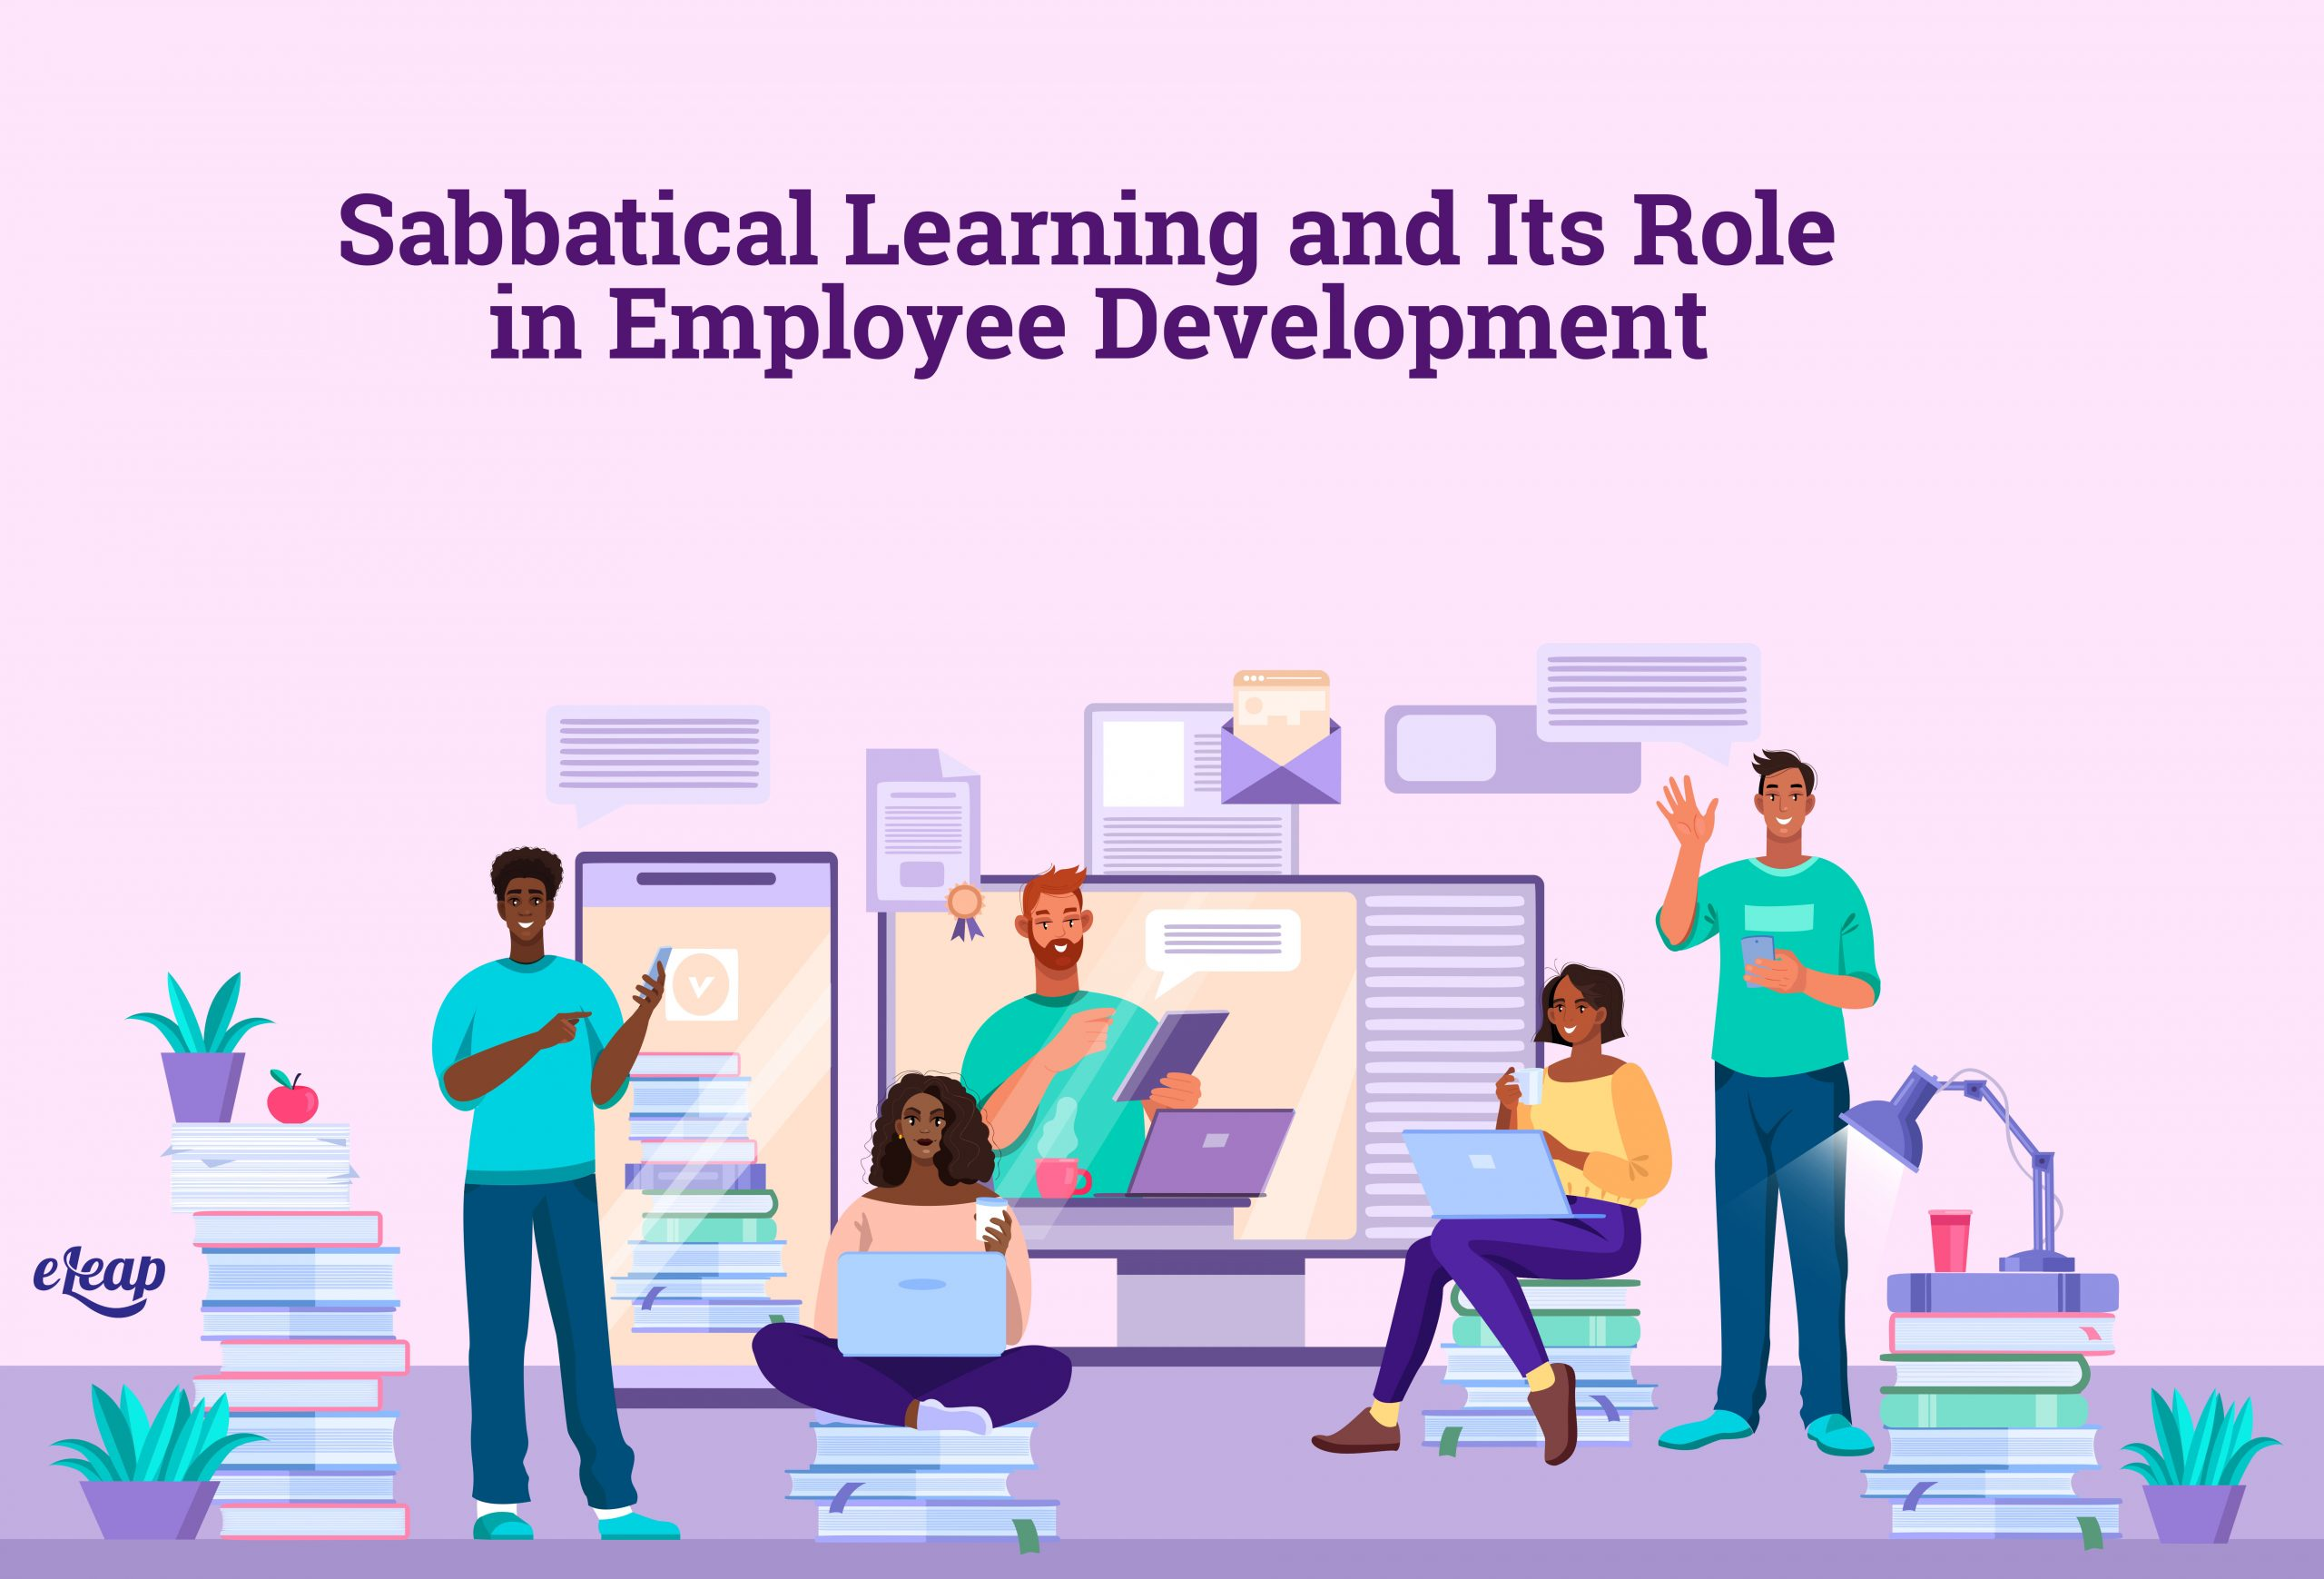 Sabbatical Learning and Its Role in Employee Development